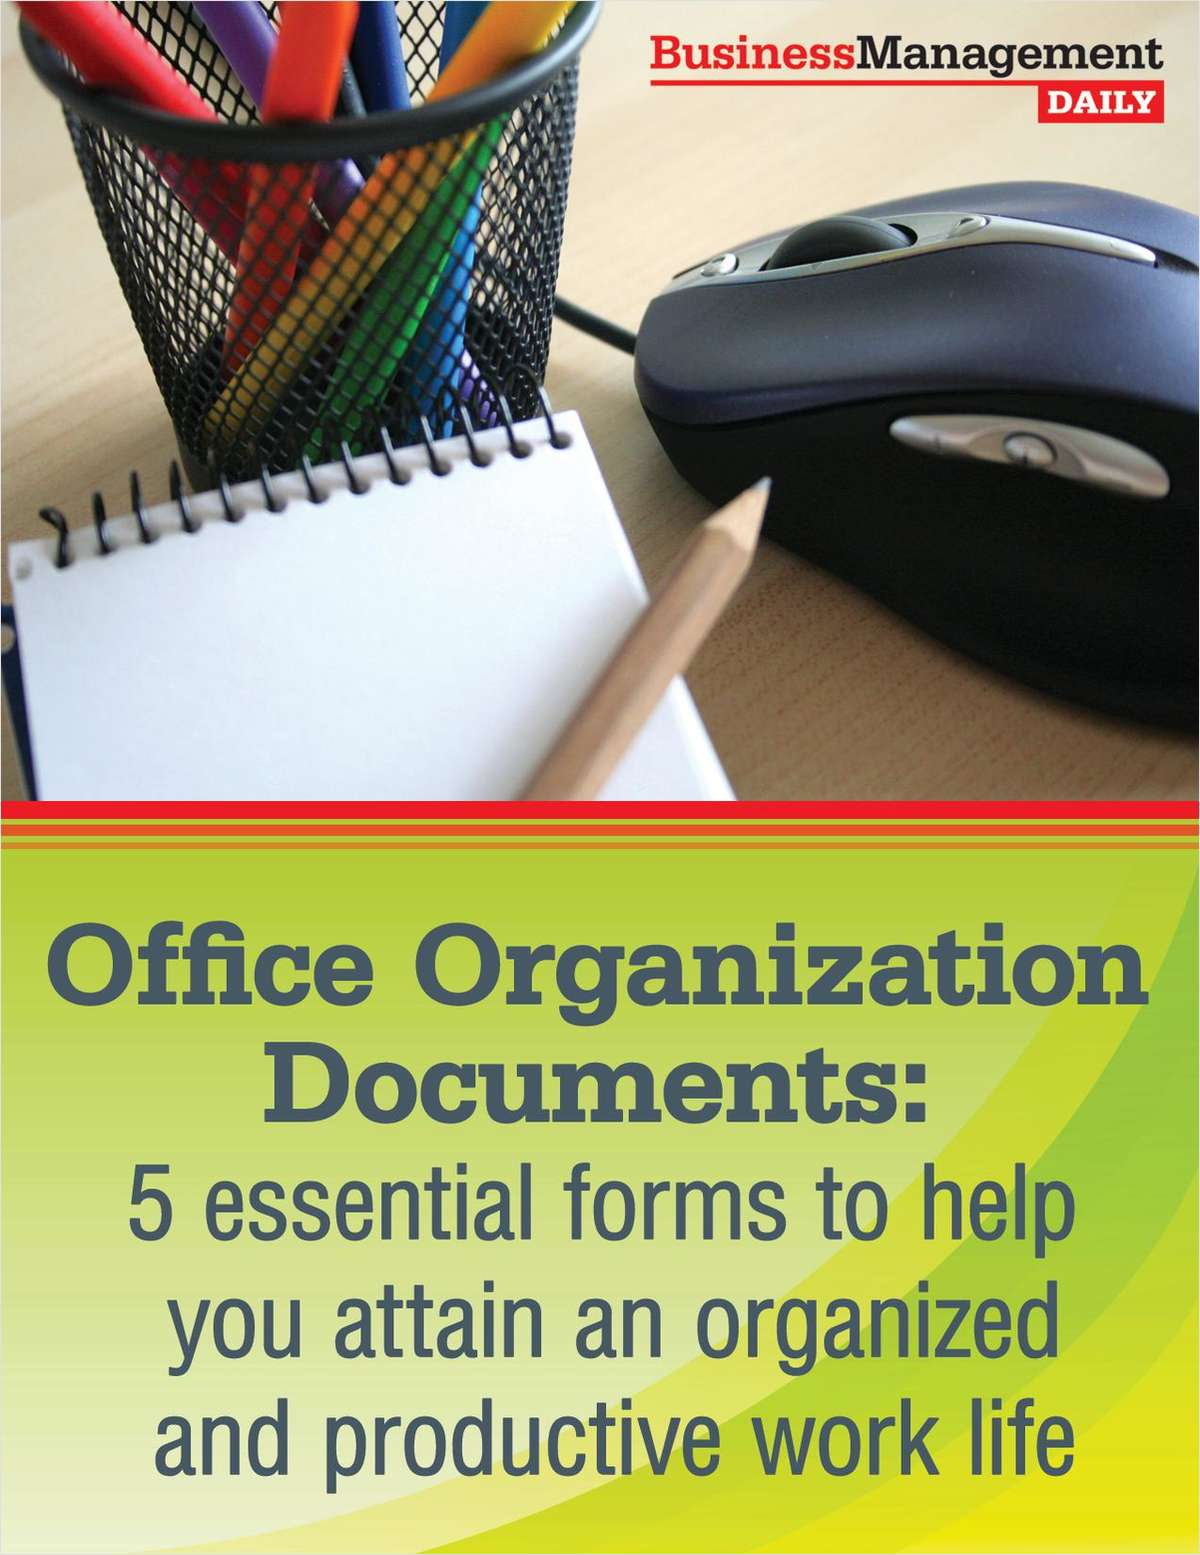 Office Organization Documents: 5 Essential Forms to Help You Attain an Organized and Productive Work Life